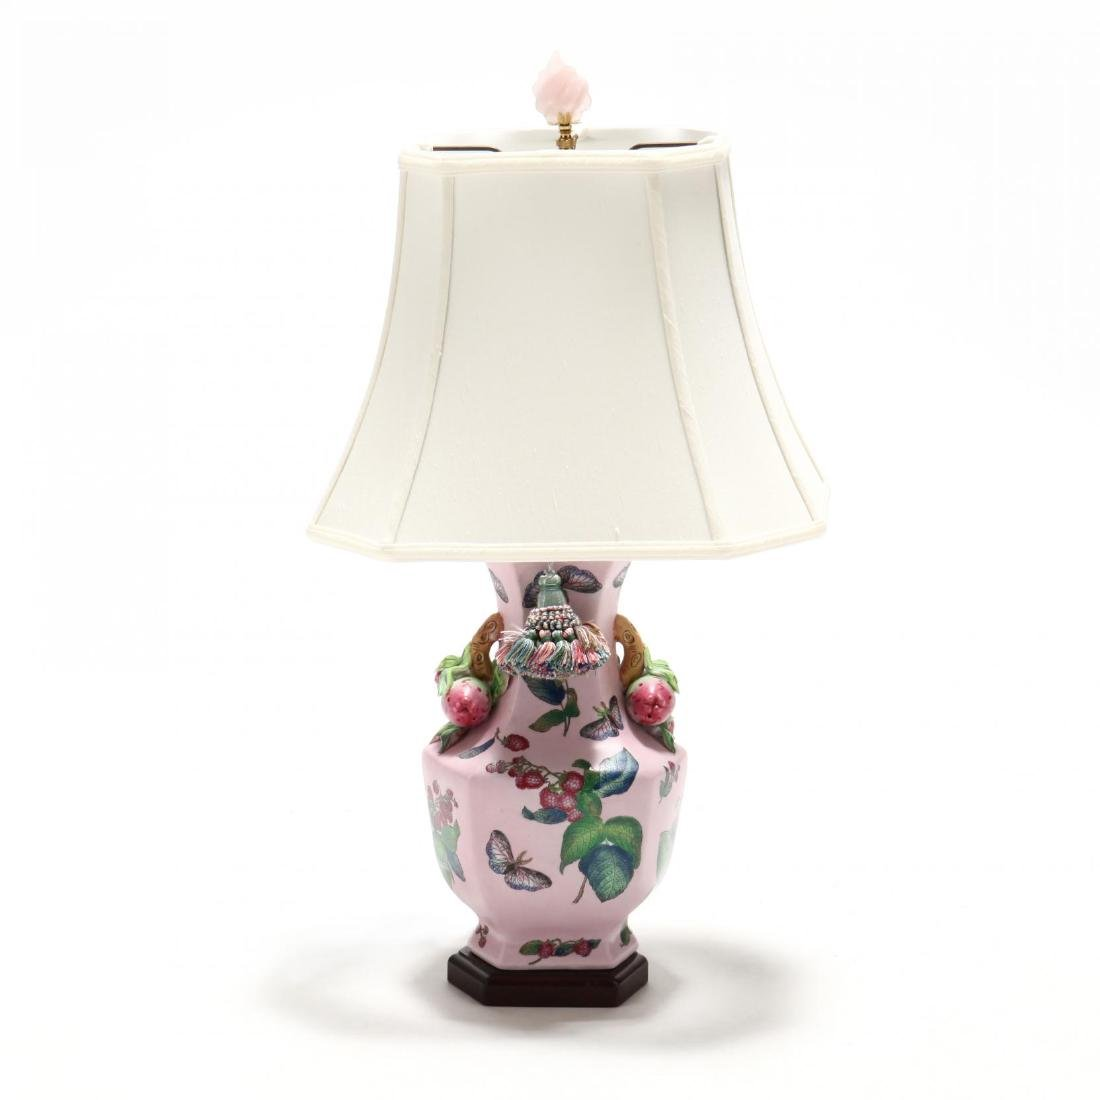 Chinese Export Style Porcelain Table Lamp